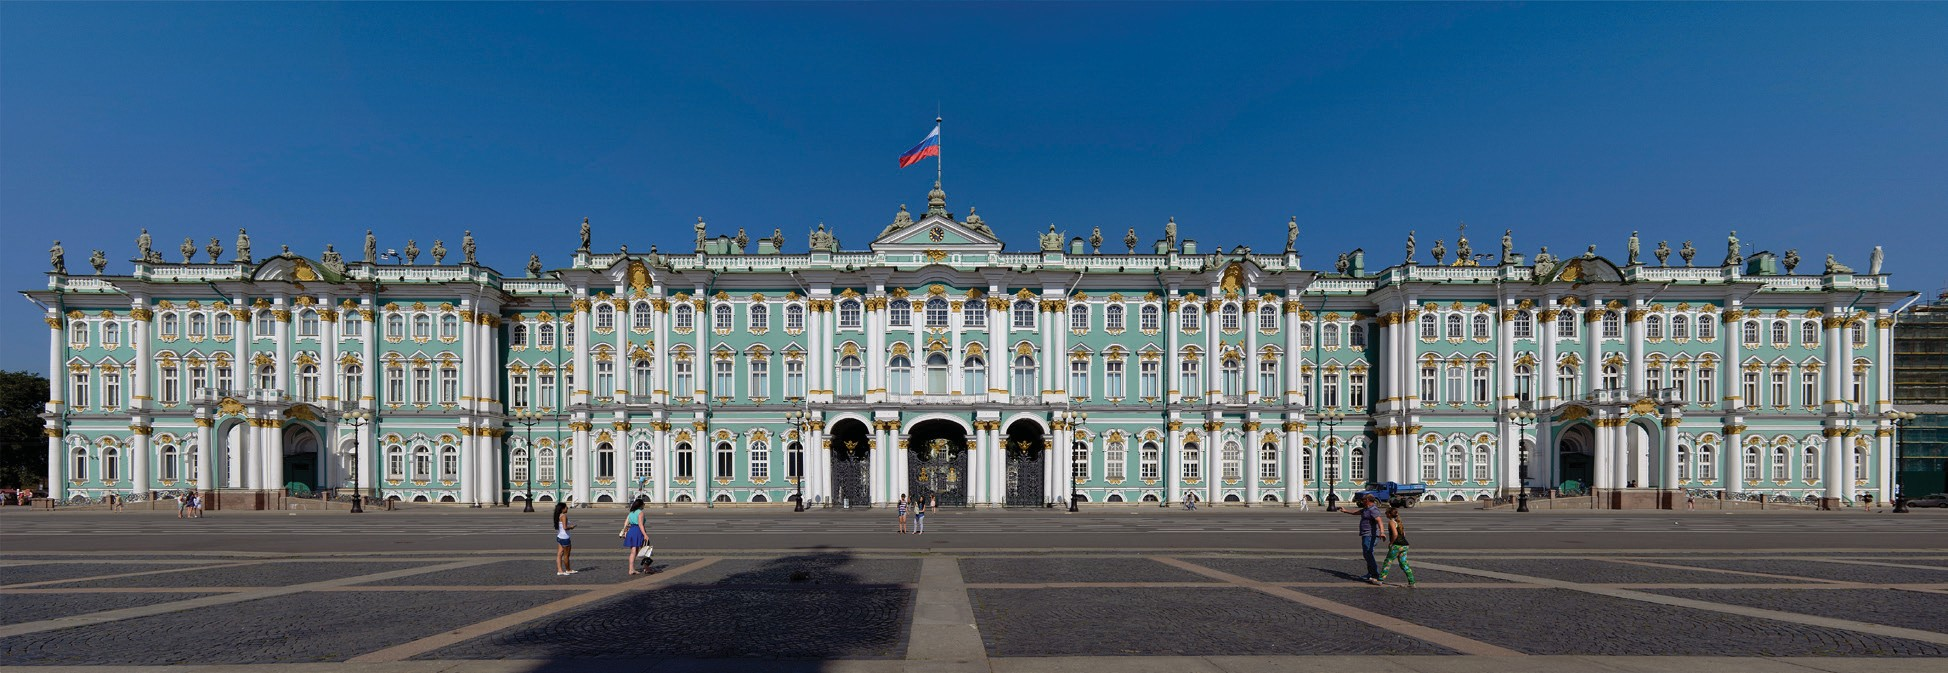 Winter Palace, St. Petersburg